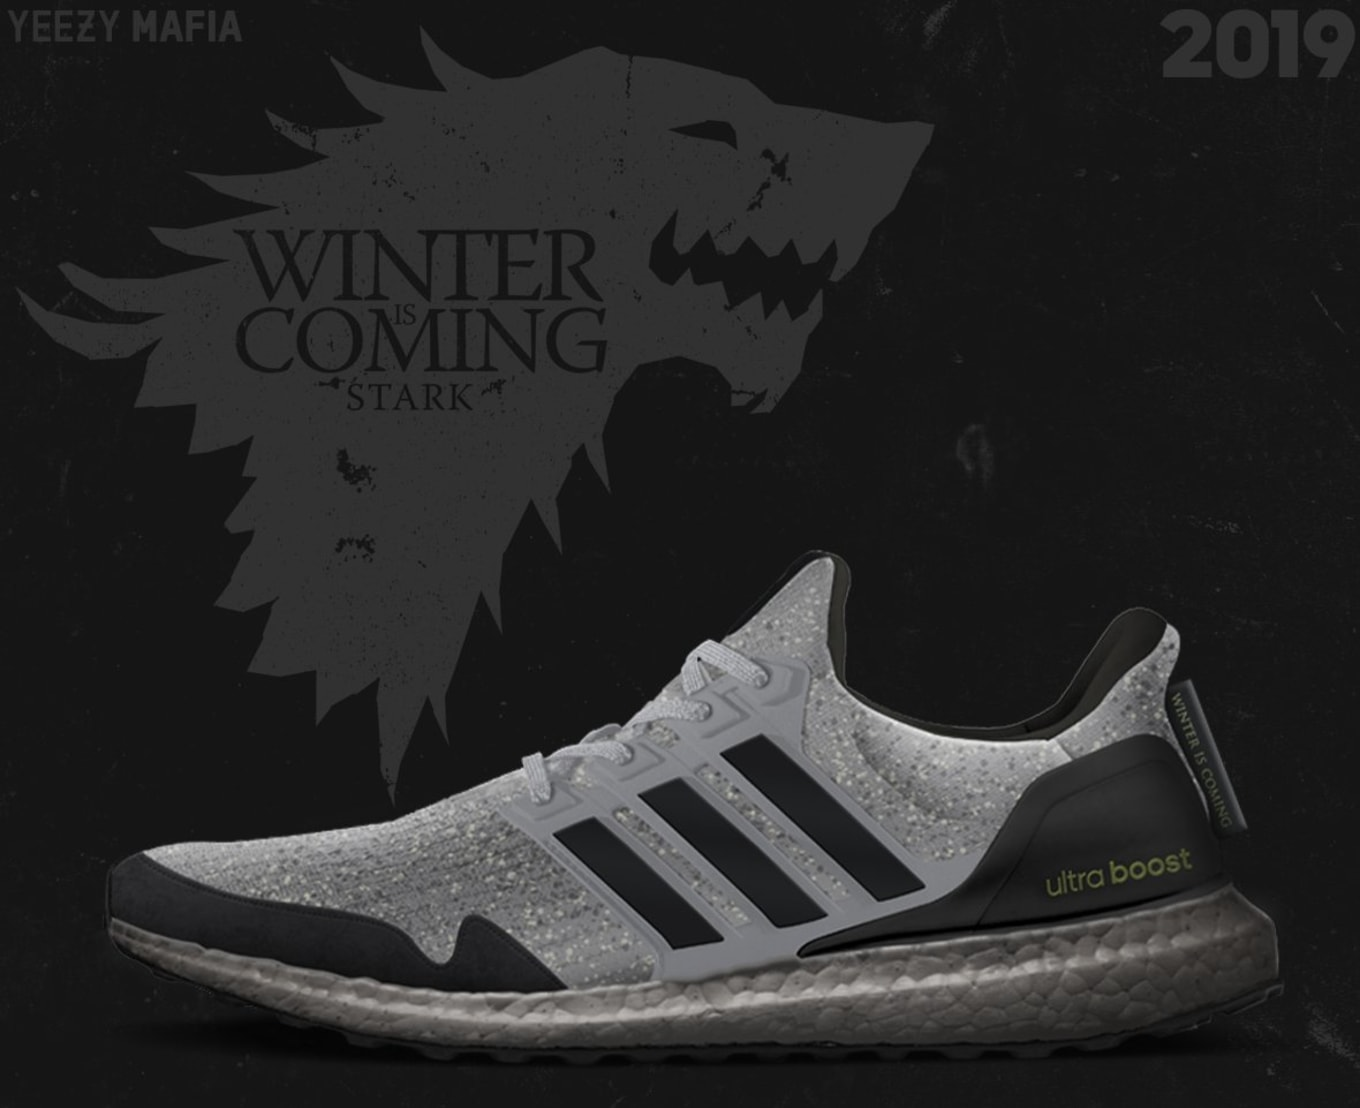 e3d782ab975b2 Even More  Game of Thrones  x Adidas Ultra Boosts for 2019. The collab  keeps growing.